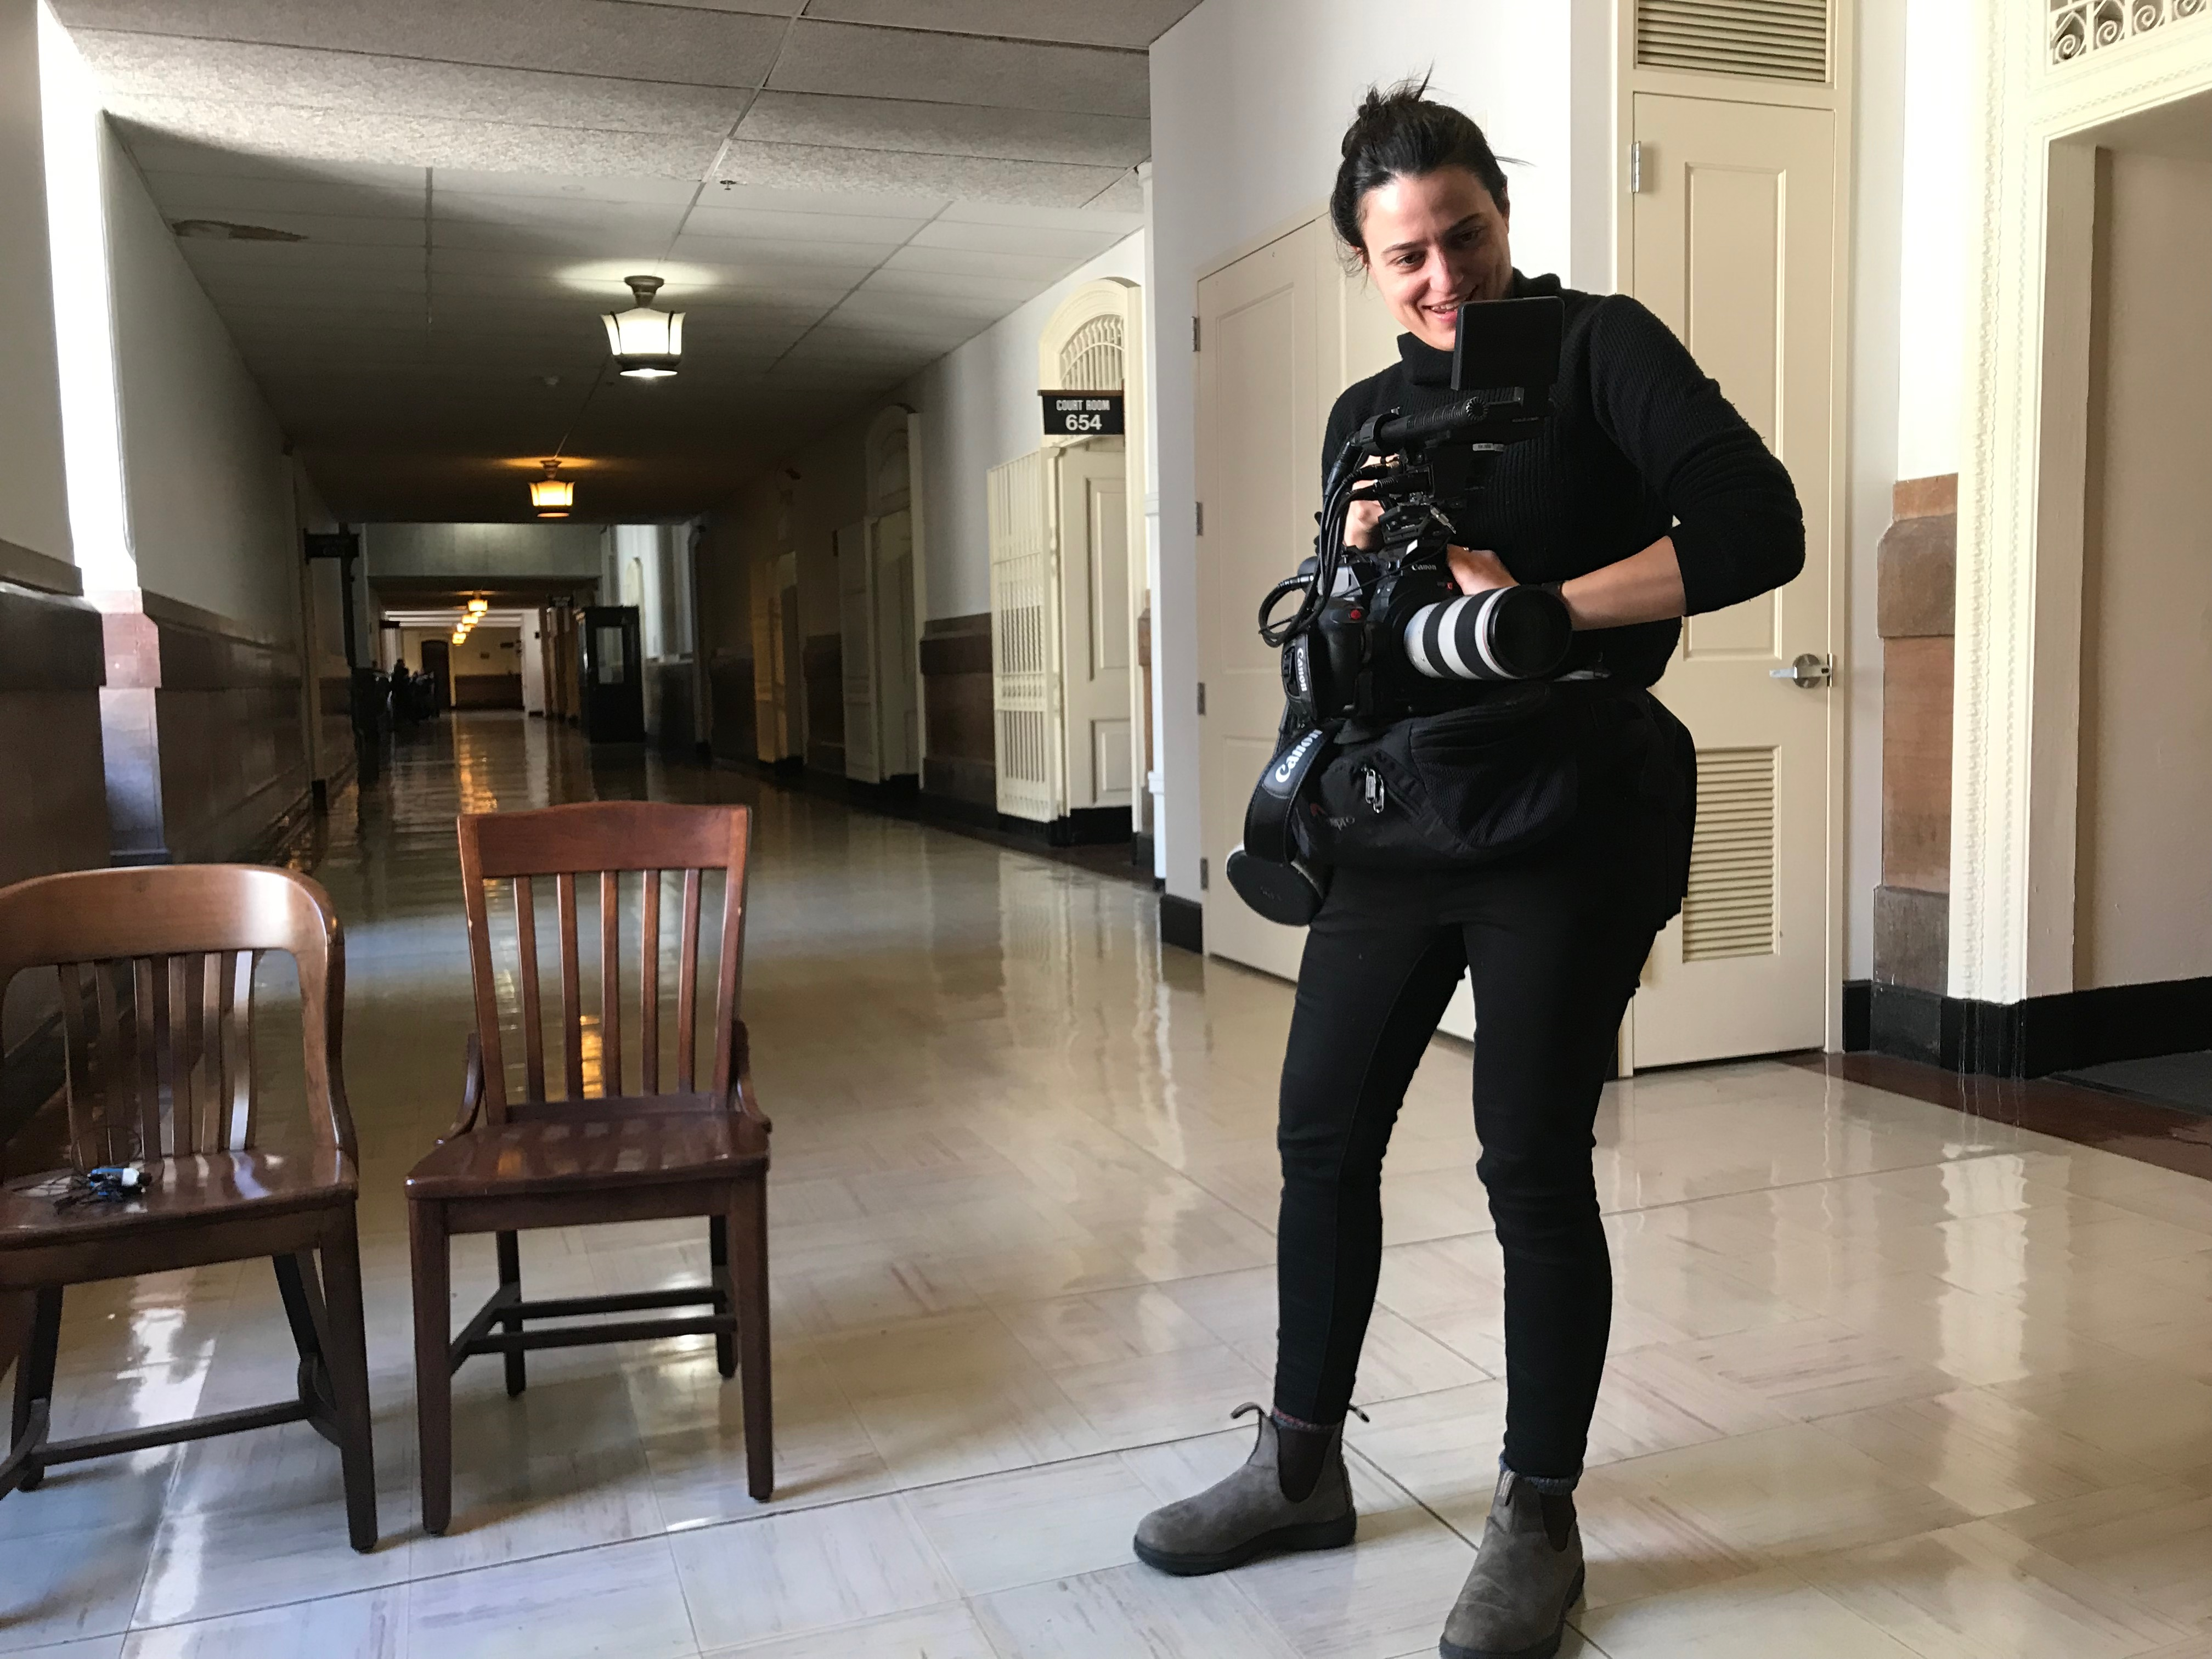 Nicole Salazar with camera in halls of D.A. office